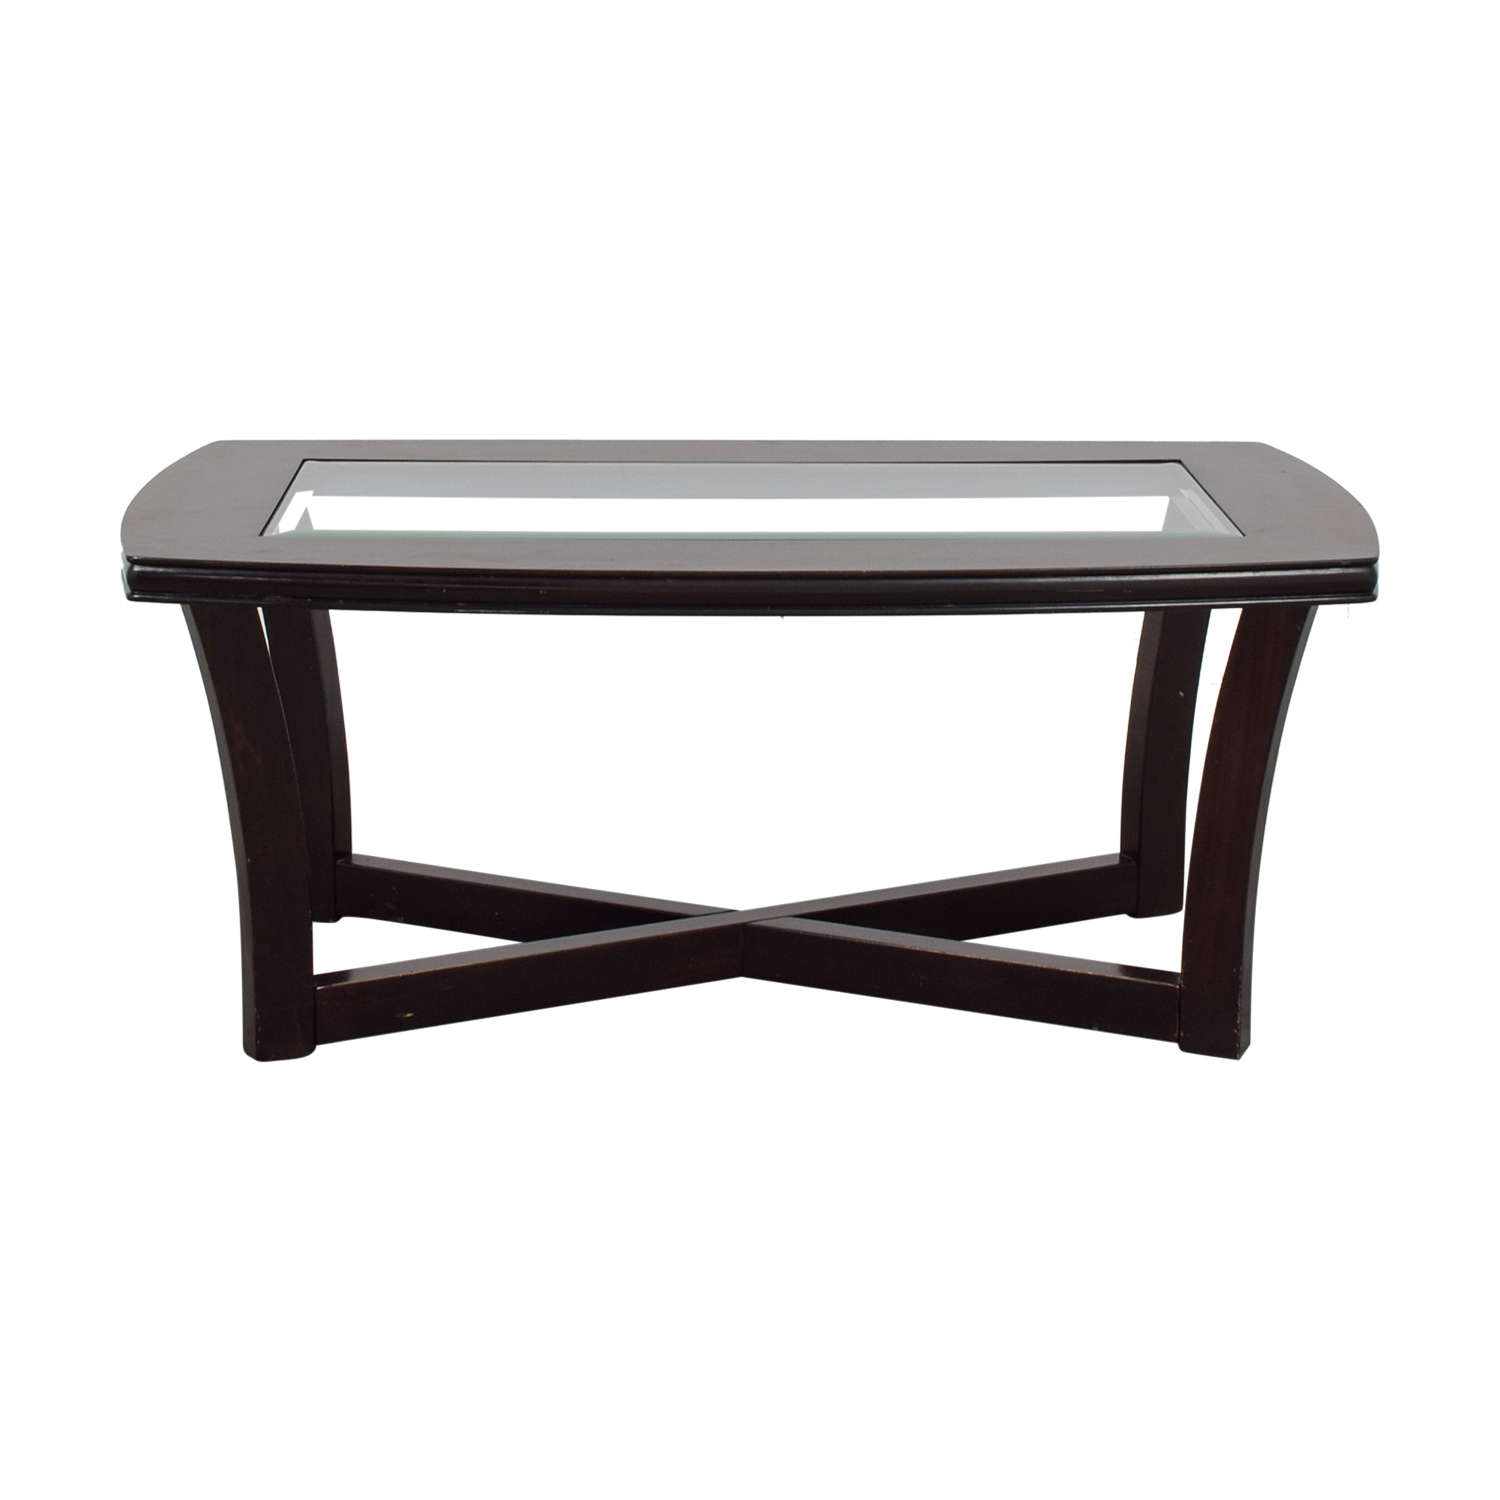 Ashley Furniture Ashley Furniture Tempered Glass and Cherry Stain Coffee Table dimensions